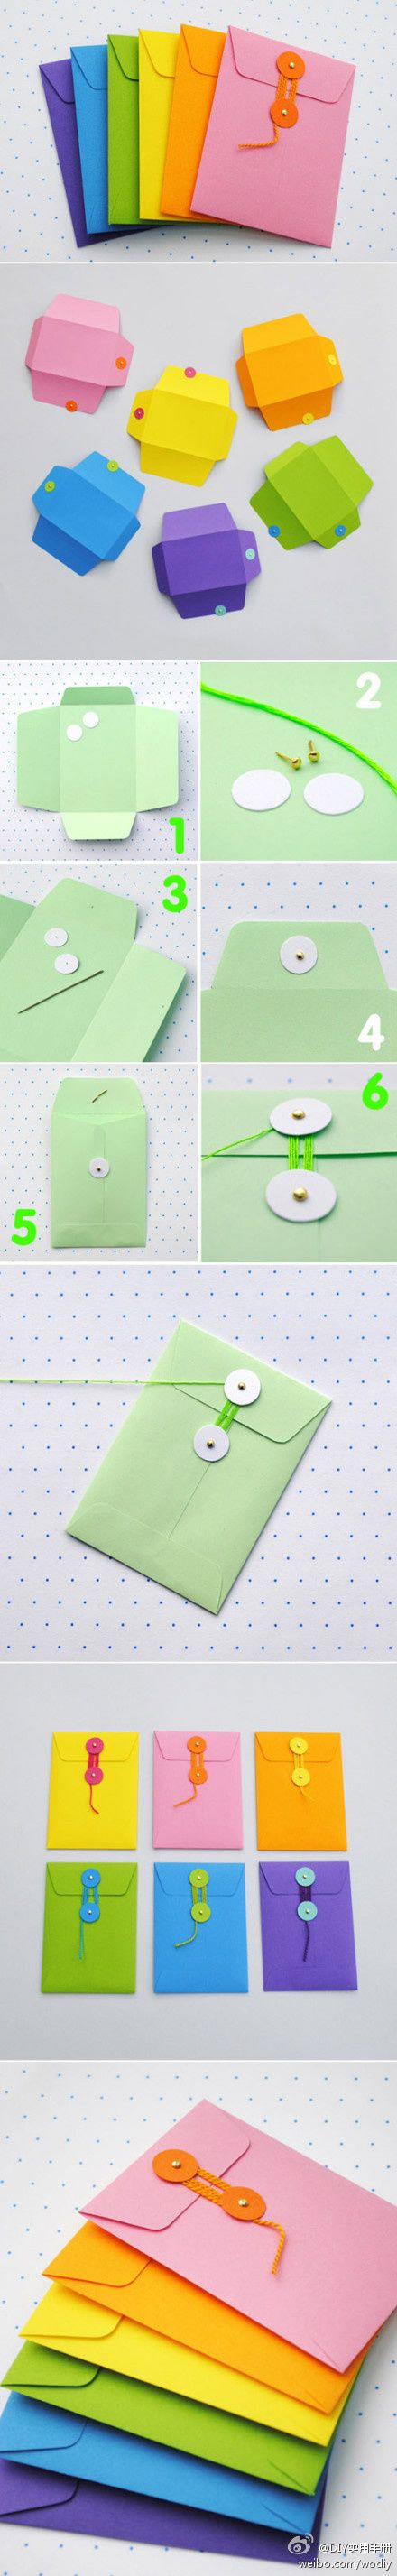 DA2014卟帶這樣哒采集到音乐、电影、图书 DIY clasp envelopes Great for my art journals